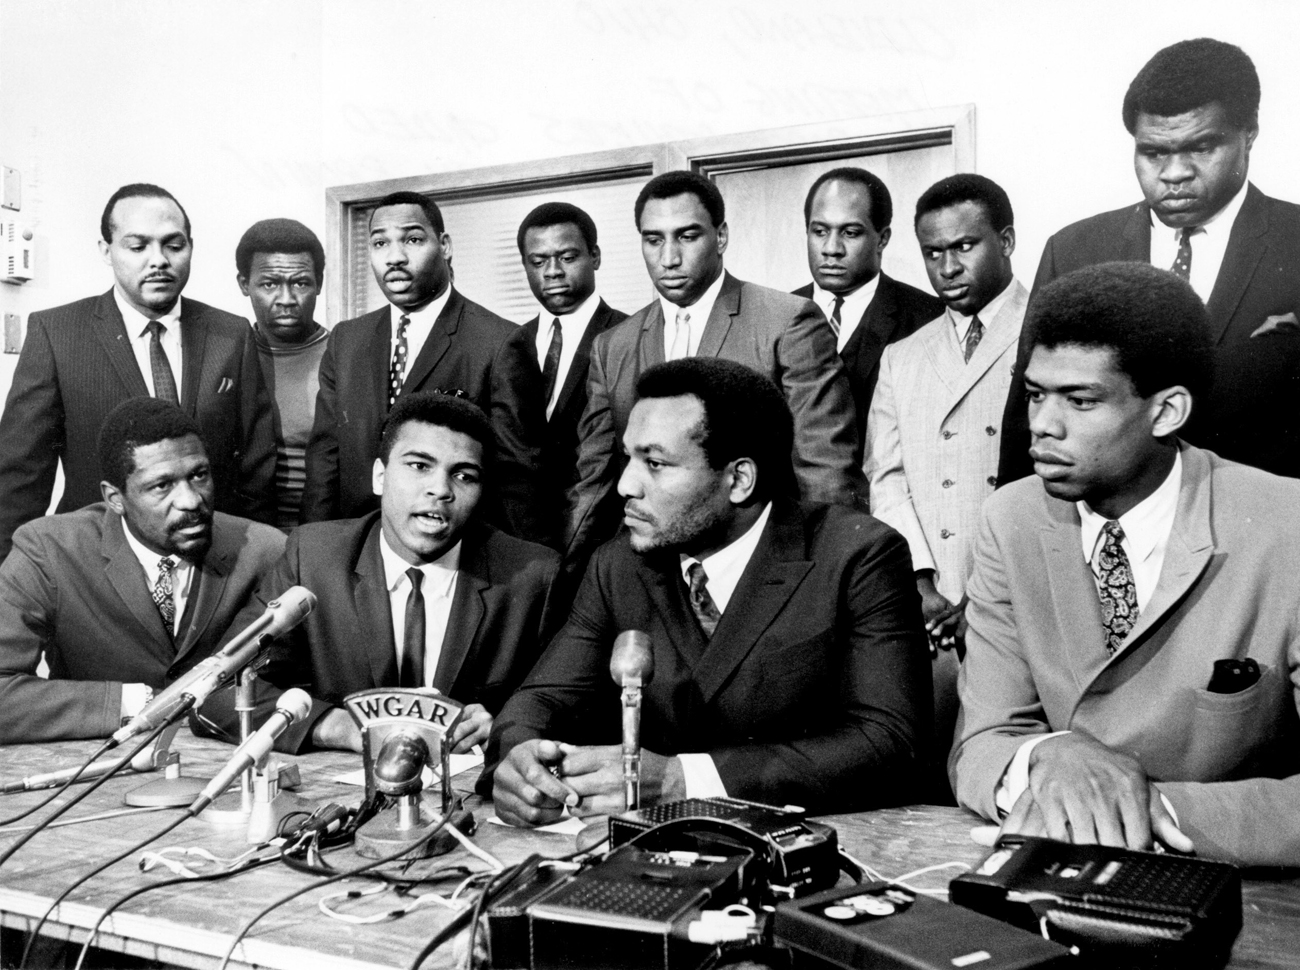 Jim Brown, Kareem Abdul-Jabbar, Bill Russell and other black athletes gather to support Muhammad Ali's refusal to fight in Vietnam